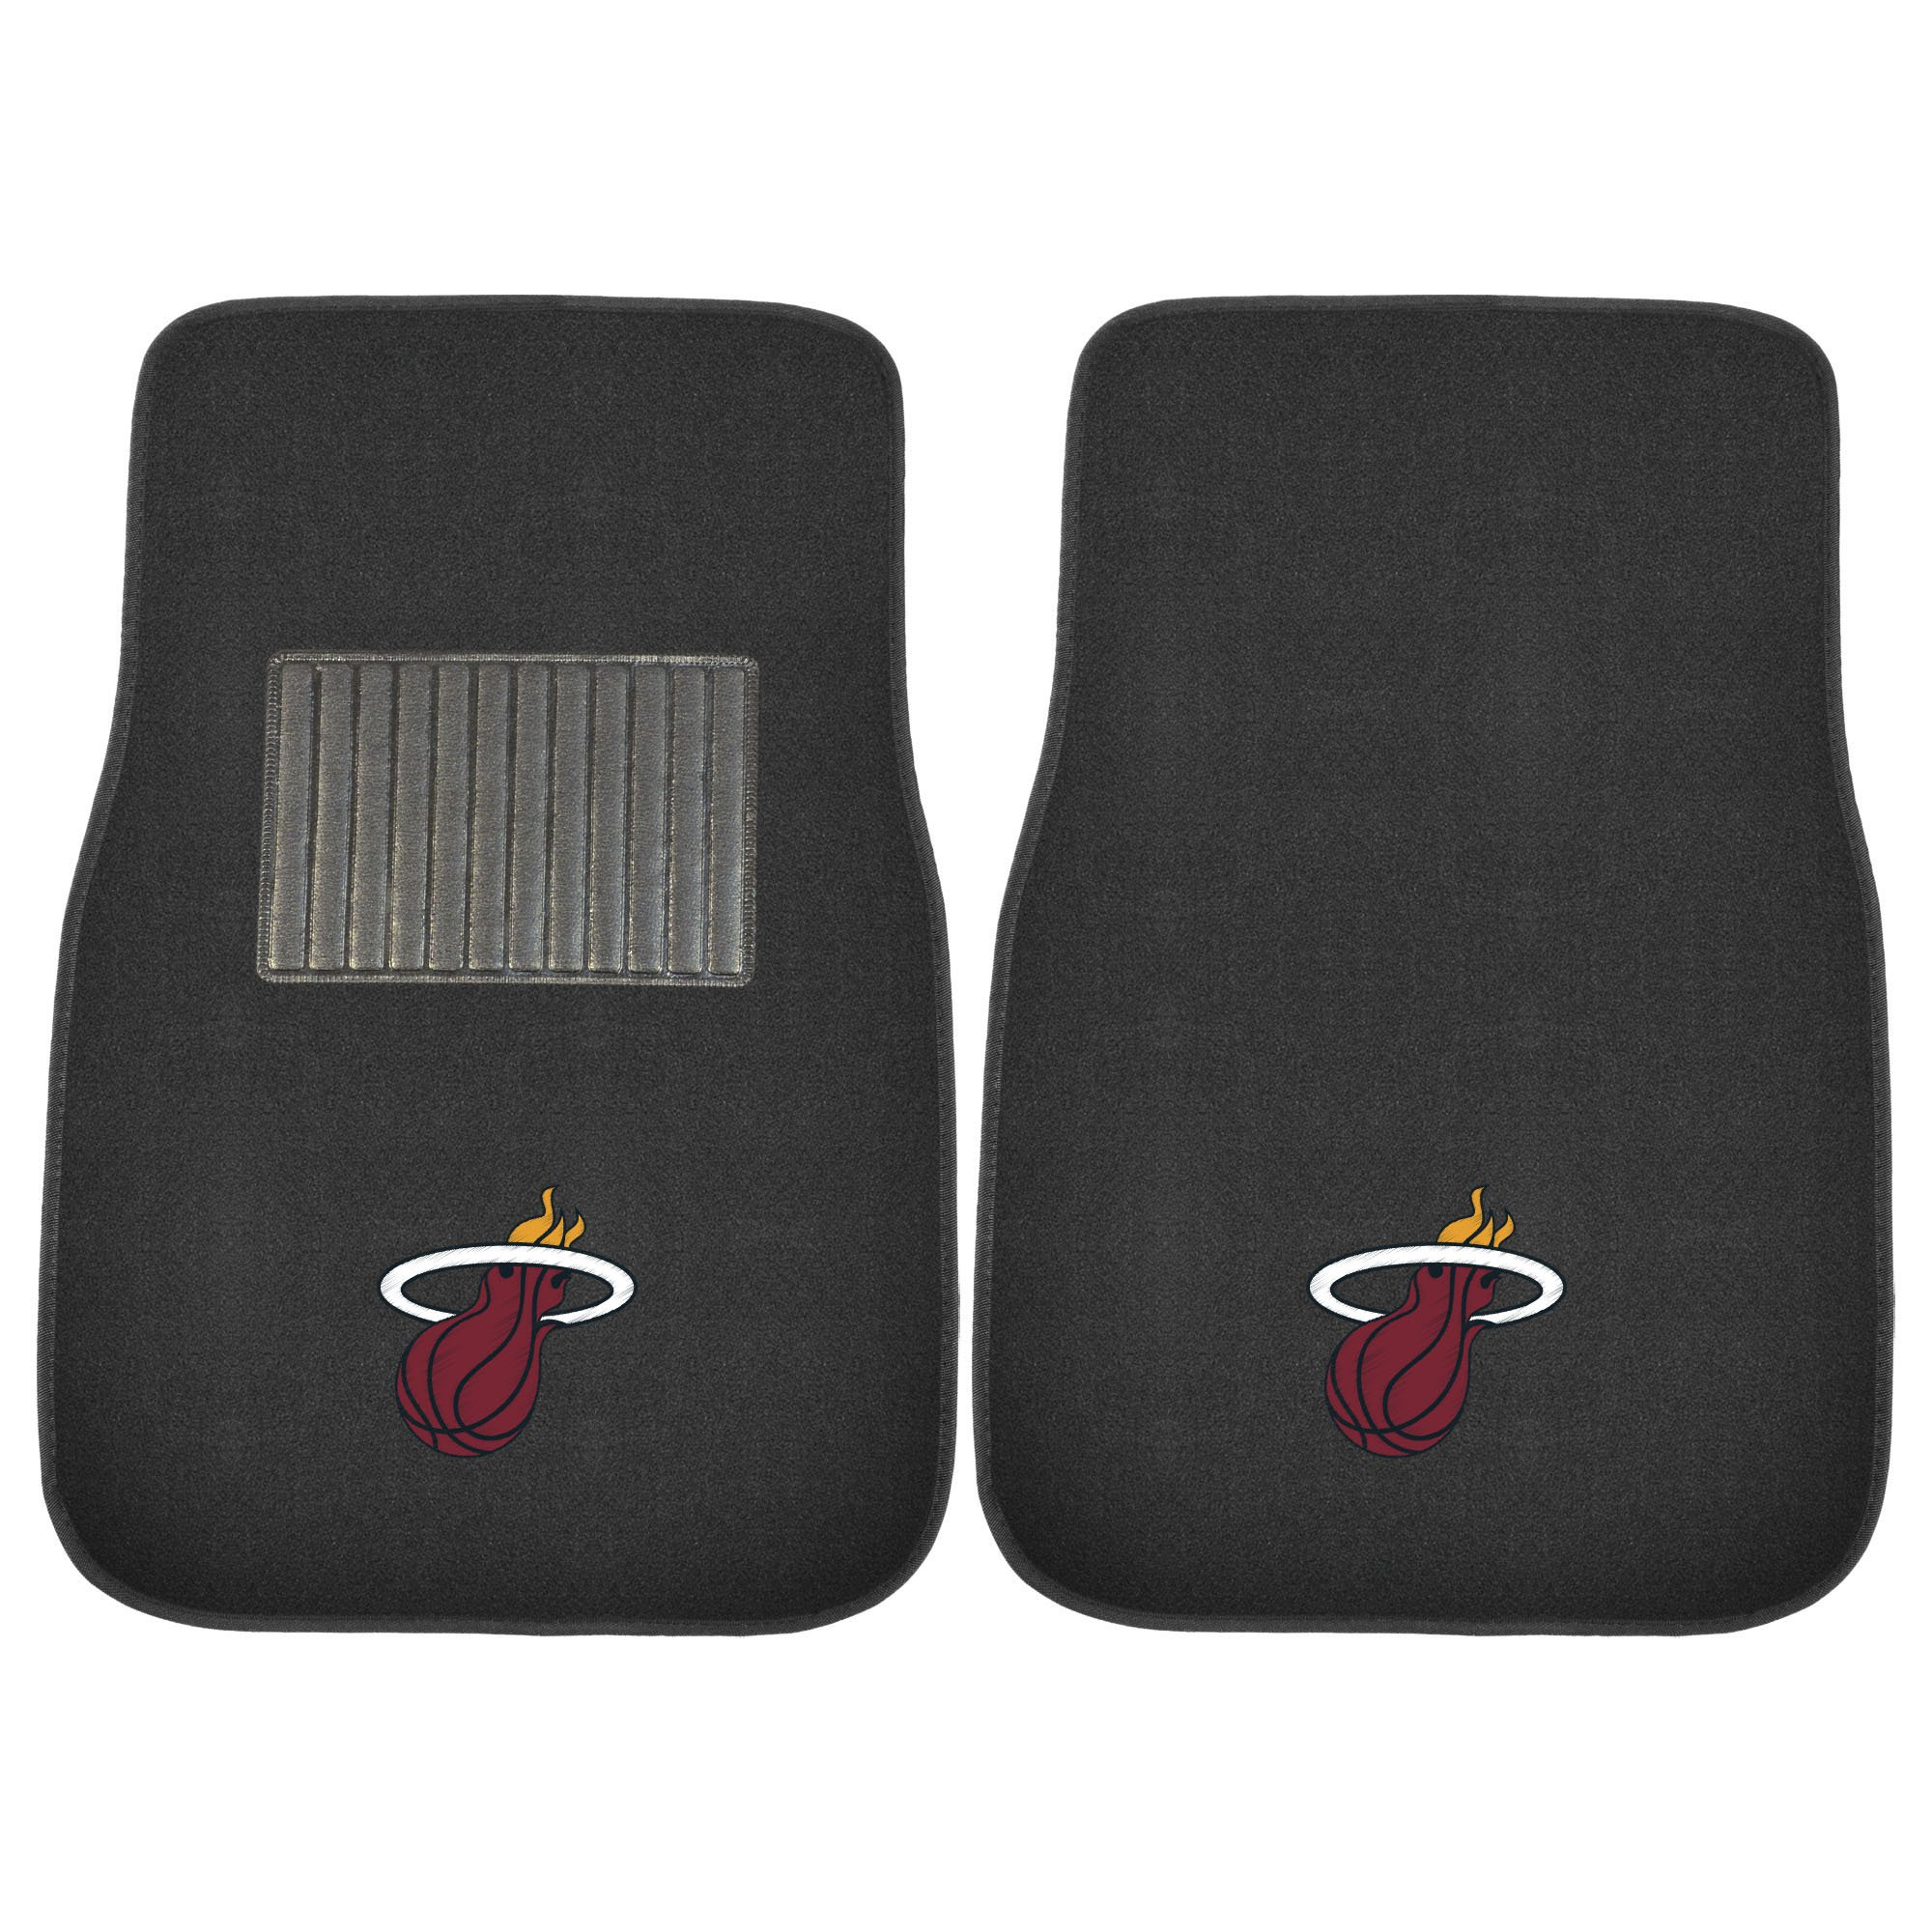 FANMATS 17609 NBA Miami Heat 2-Piece Embroidered Car Mat